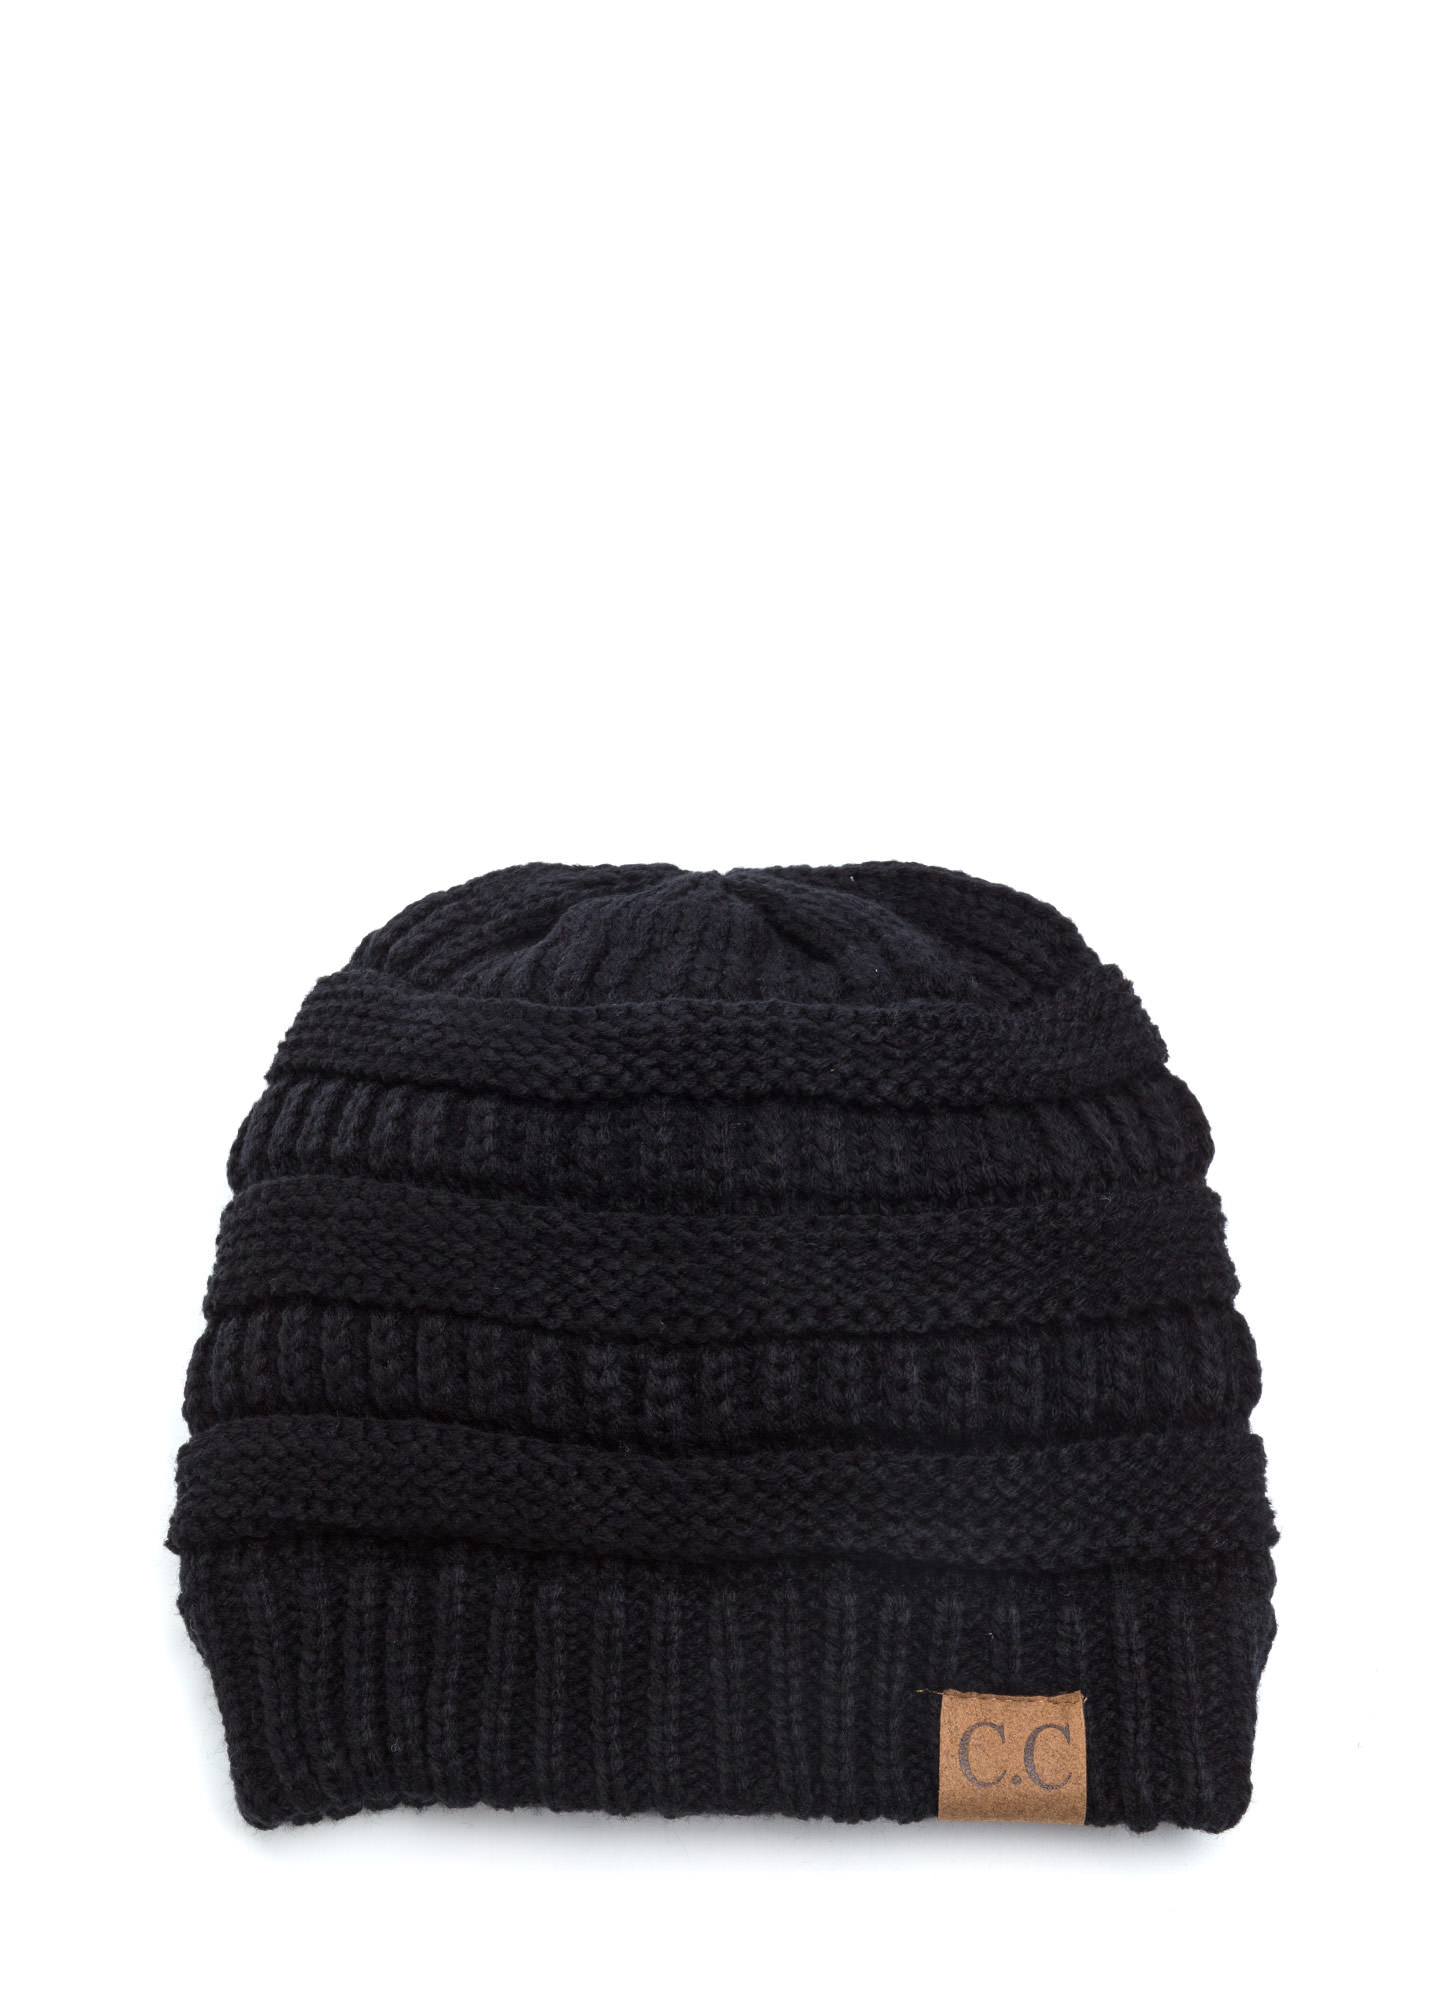 CC Cable Kit Beanie BLACK